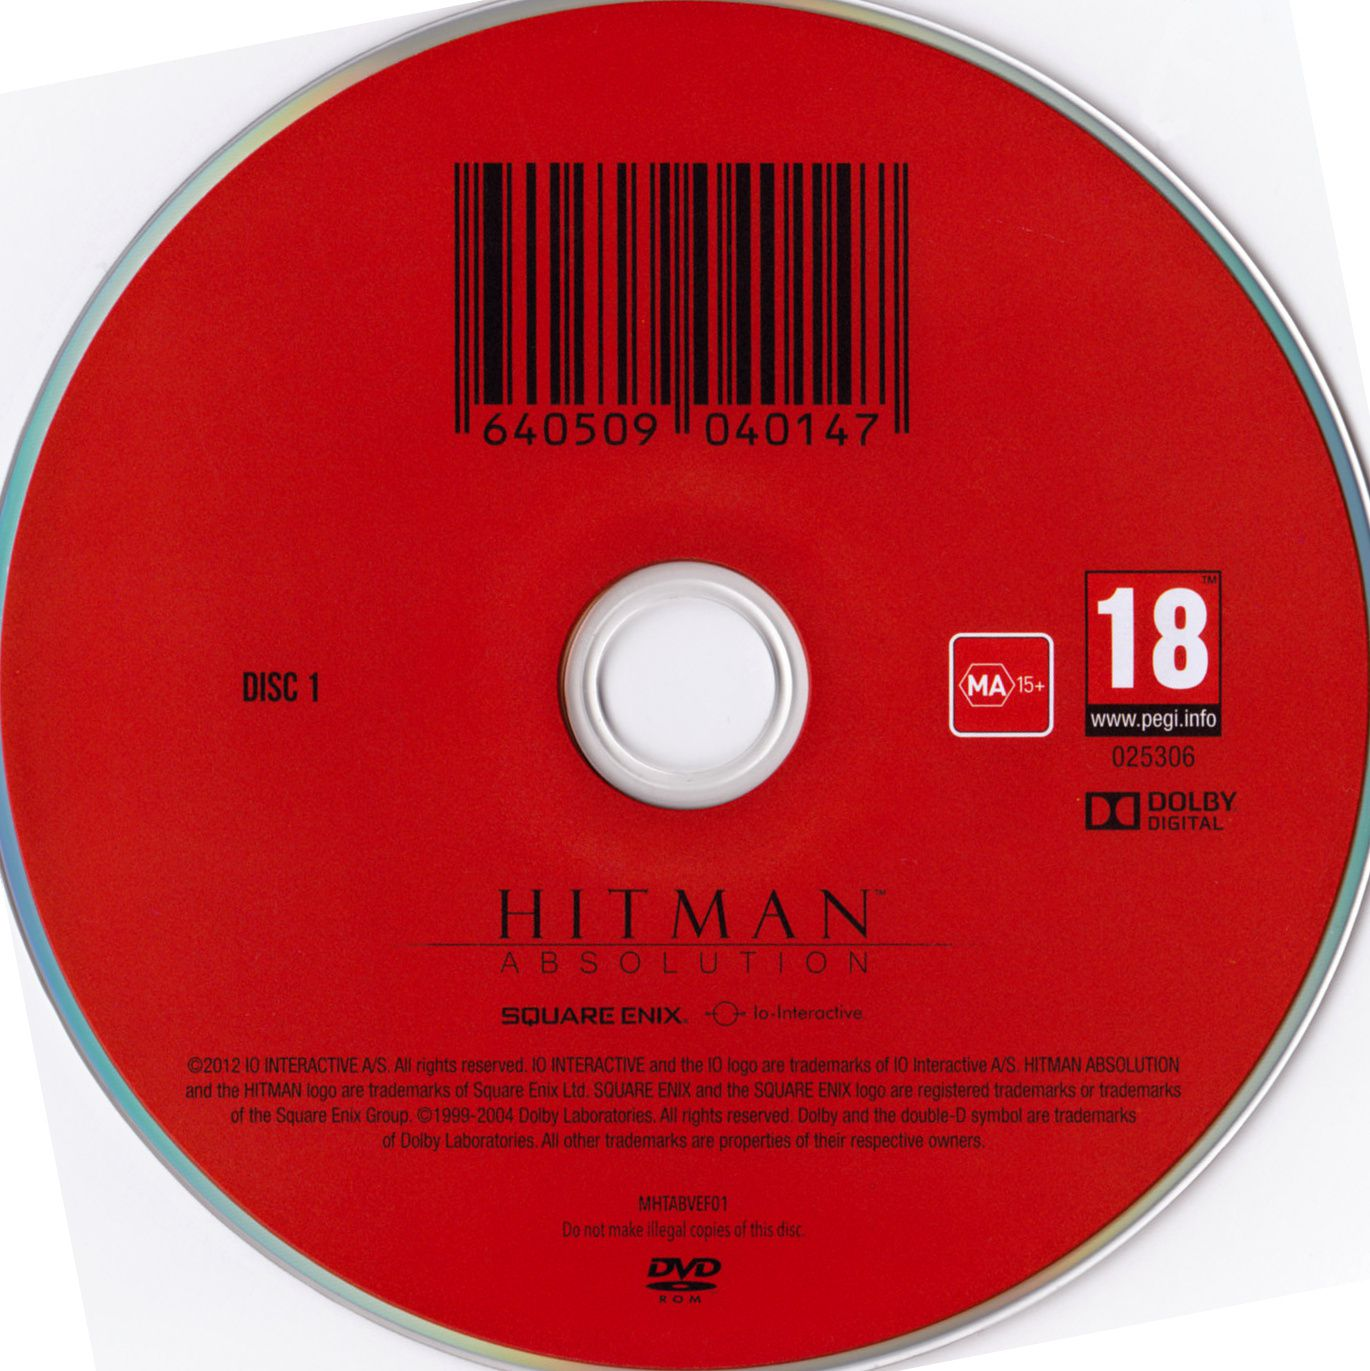 Label Hitman Absolution Disc 1 PC